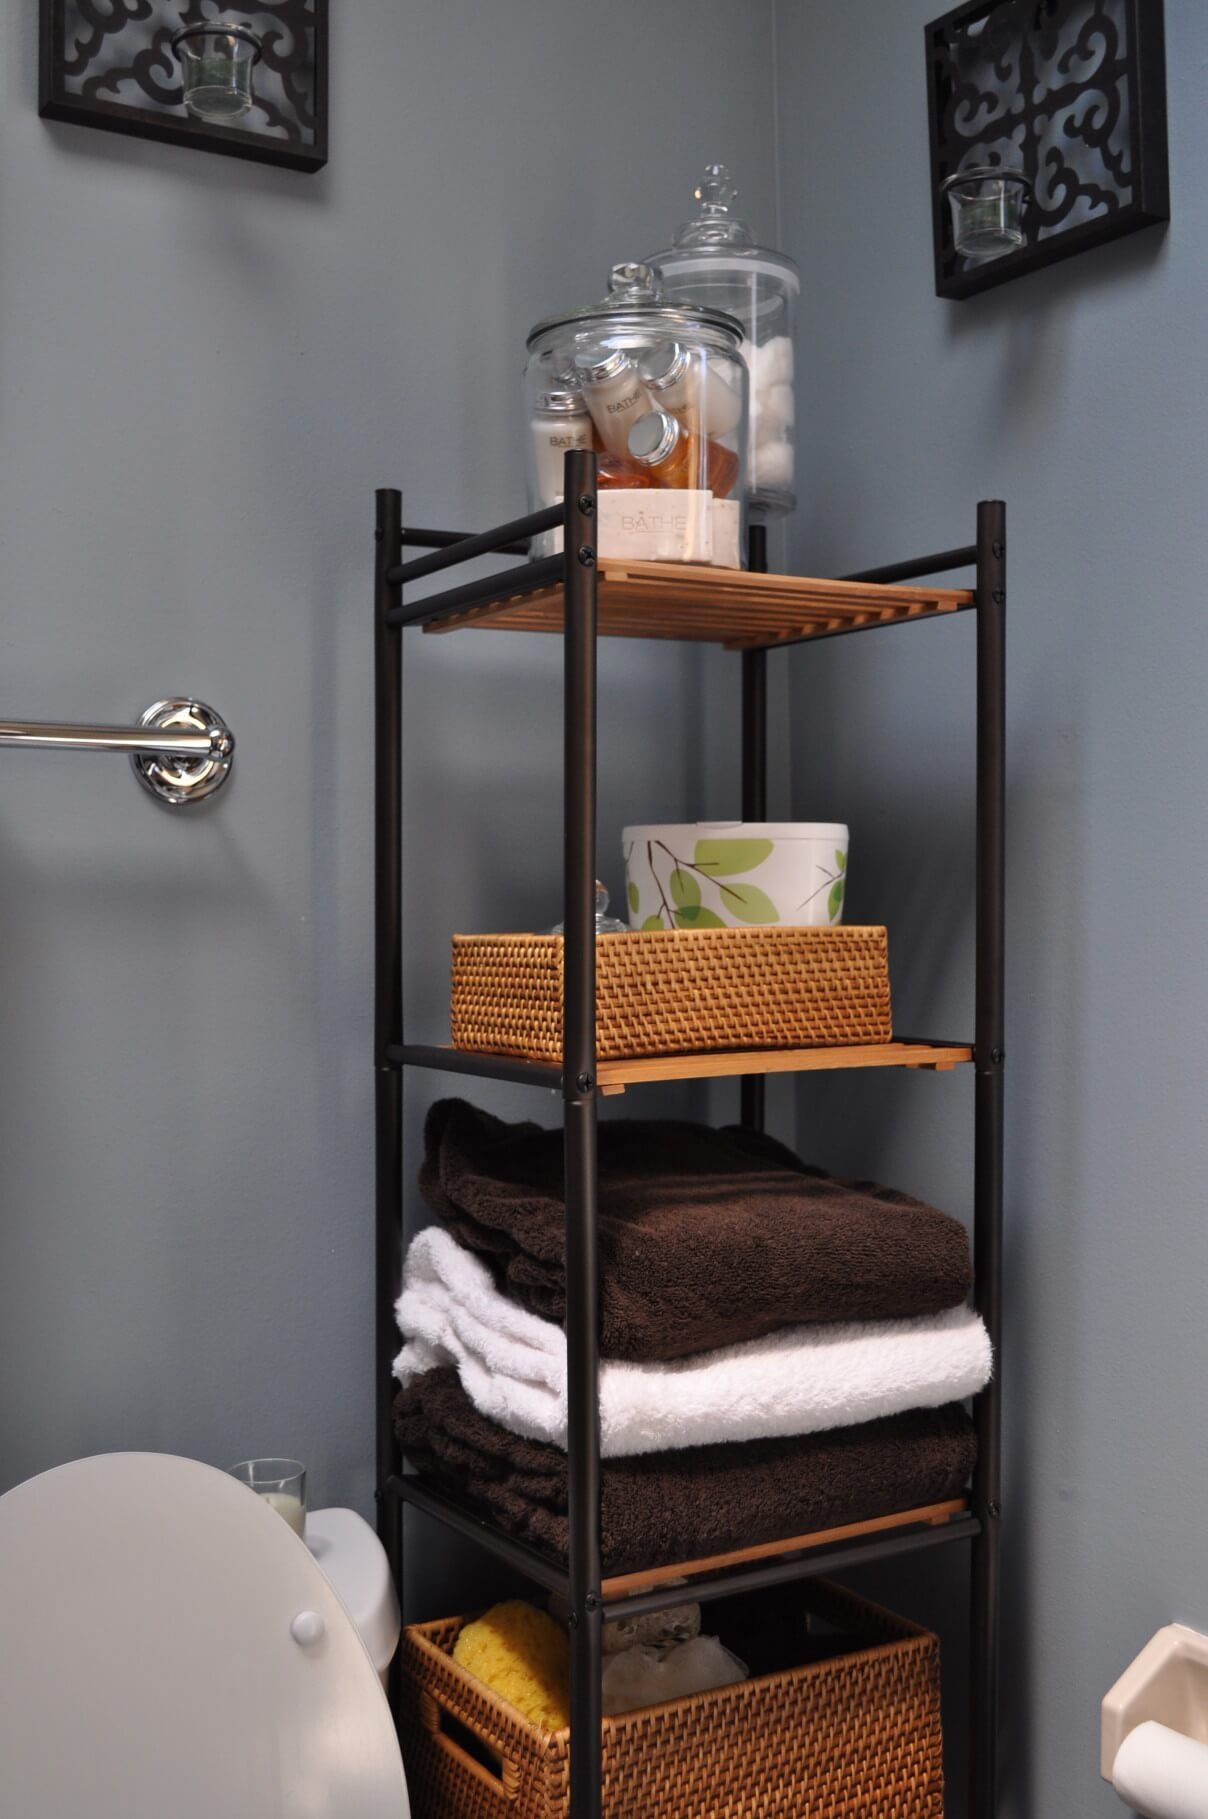 44 Unique Storage Ideas For A Small Bathroom To Make Yours Bigger Amusing Small Bathroom Stands Decorating Design